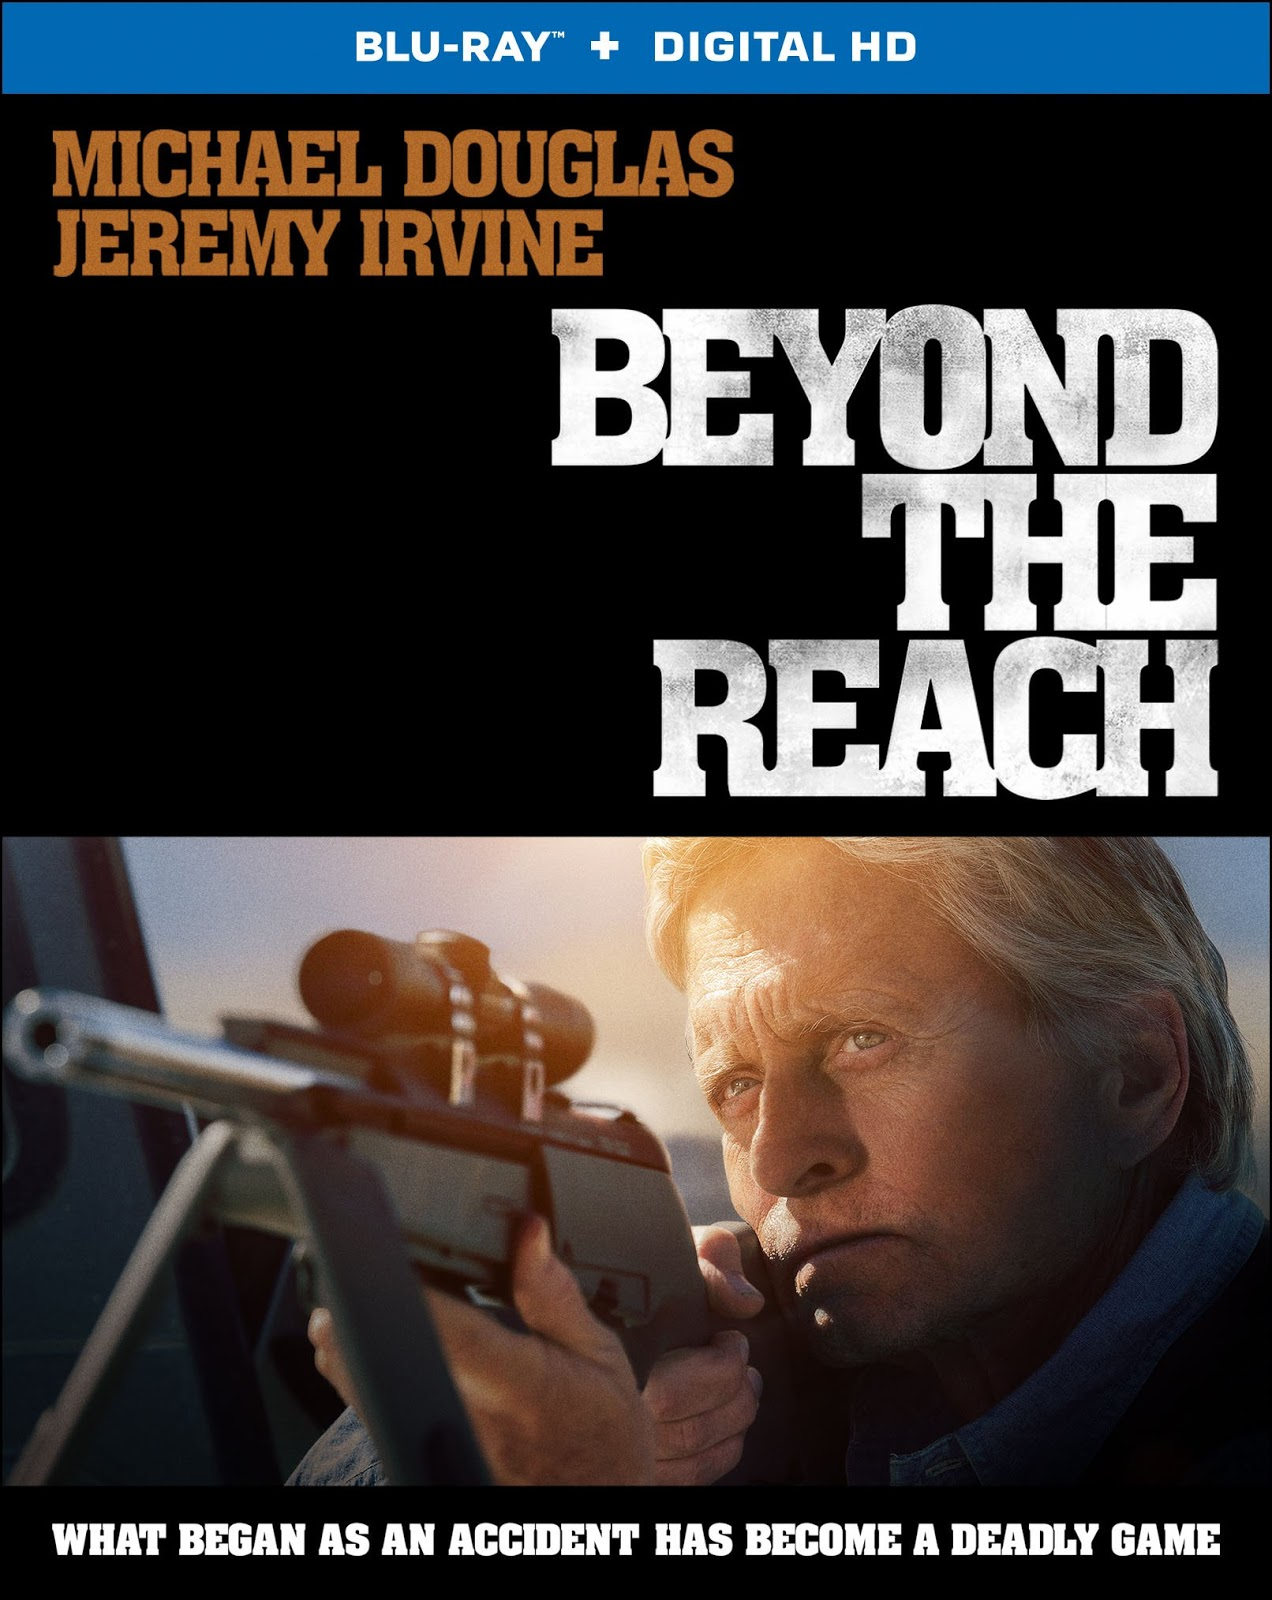 Beyond The Reach (2014) 1080p BD25 Cover Caratula Blu-ray